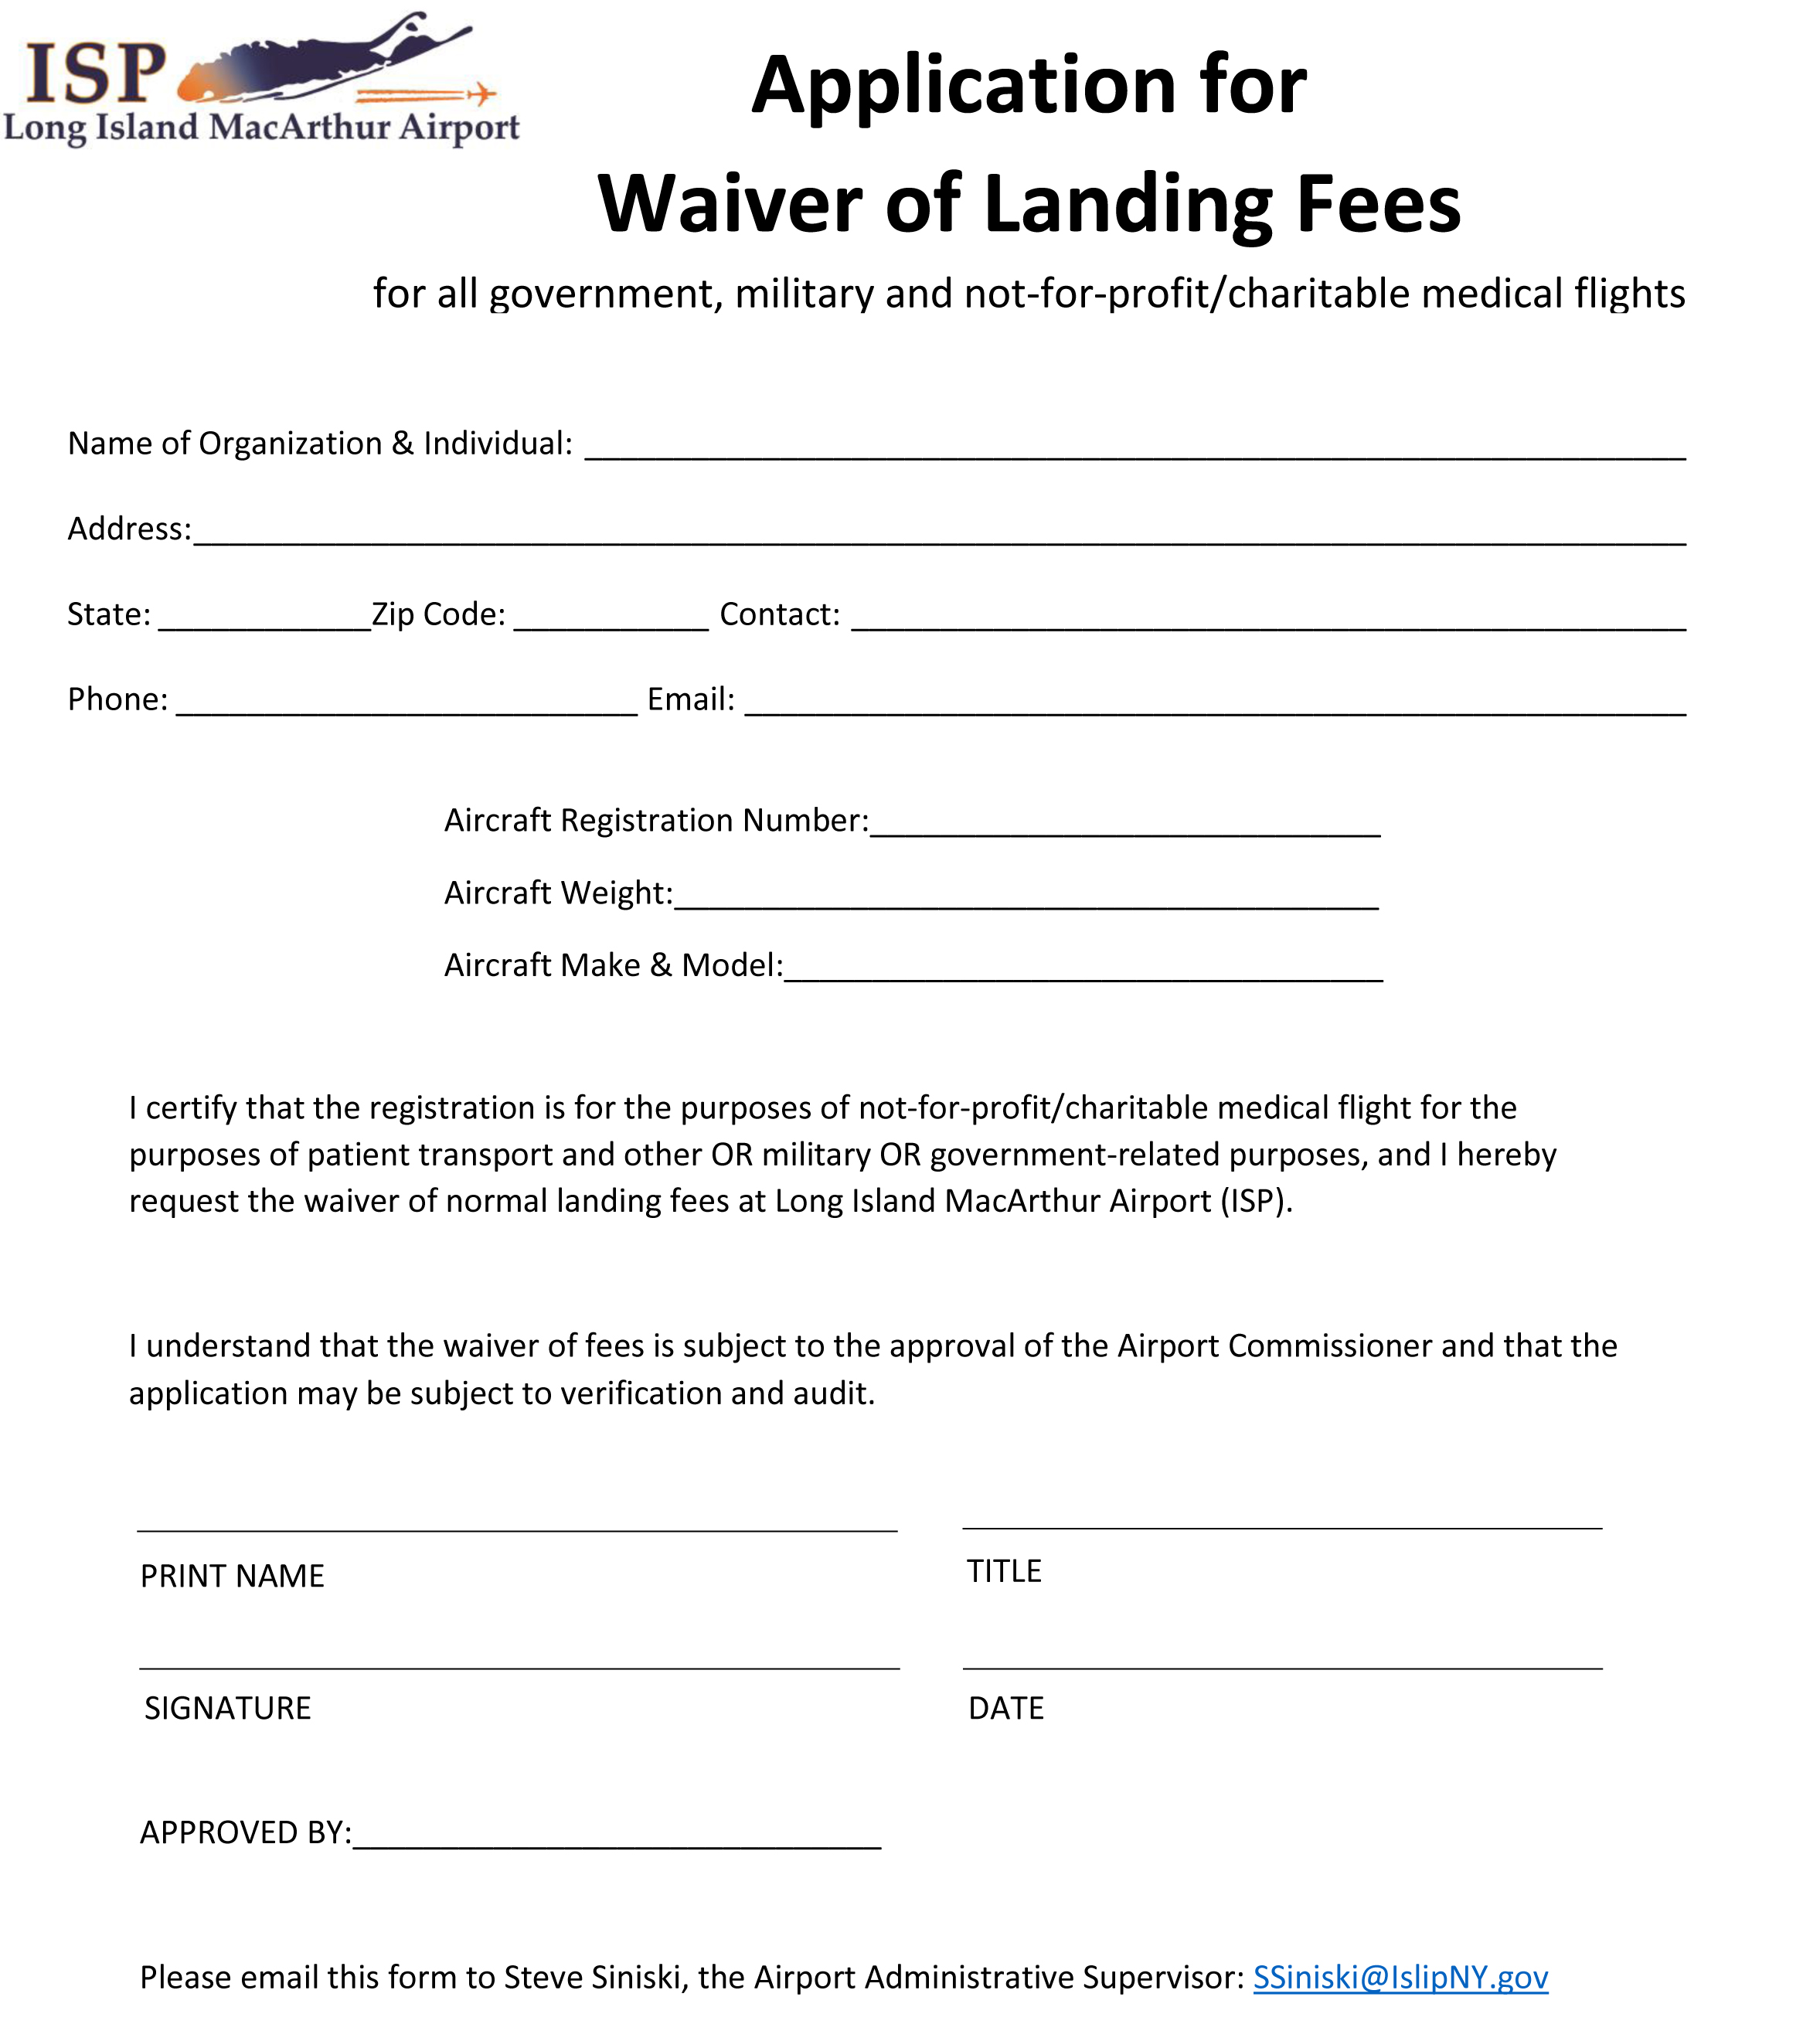 This image is of an application for a waiver fee of general aviation landing fees